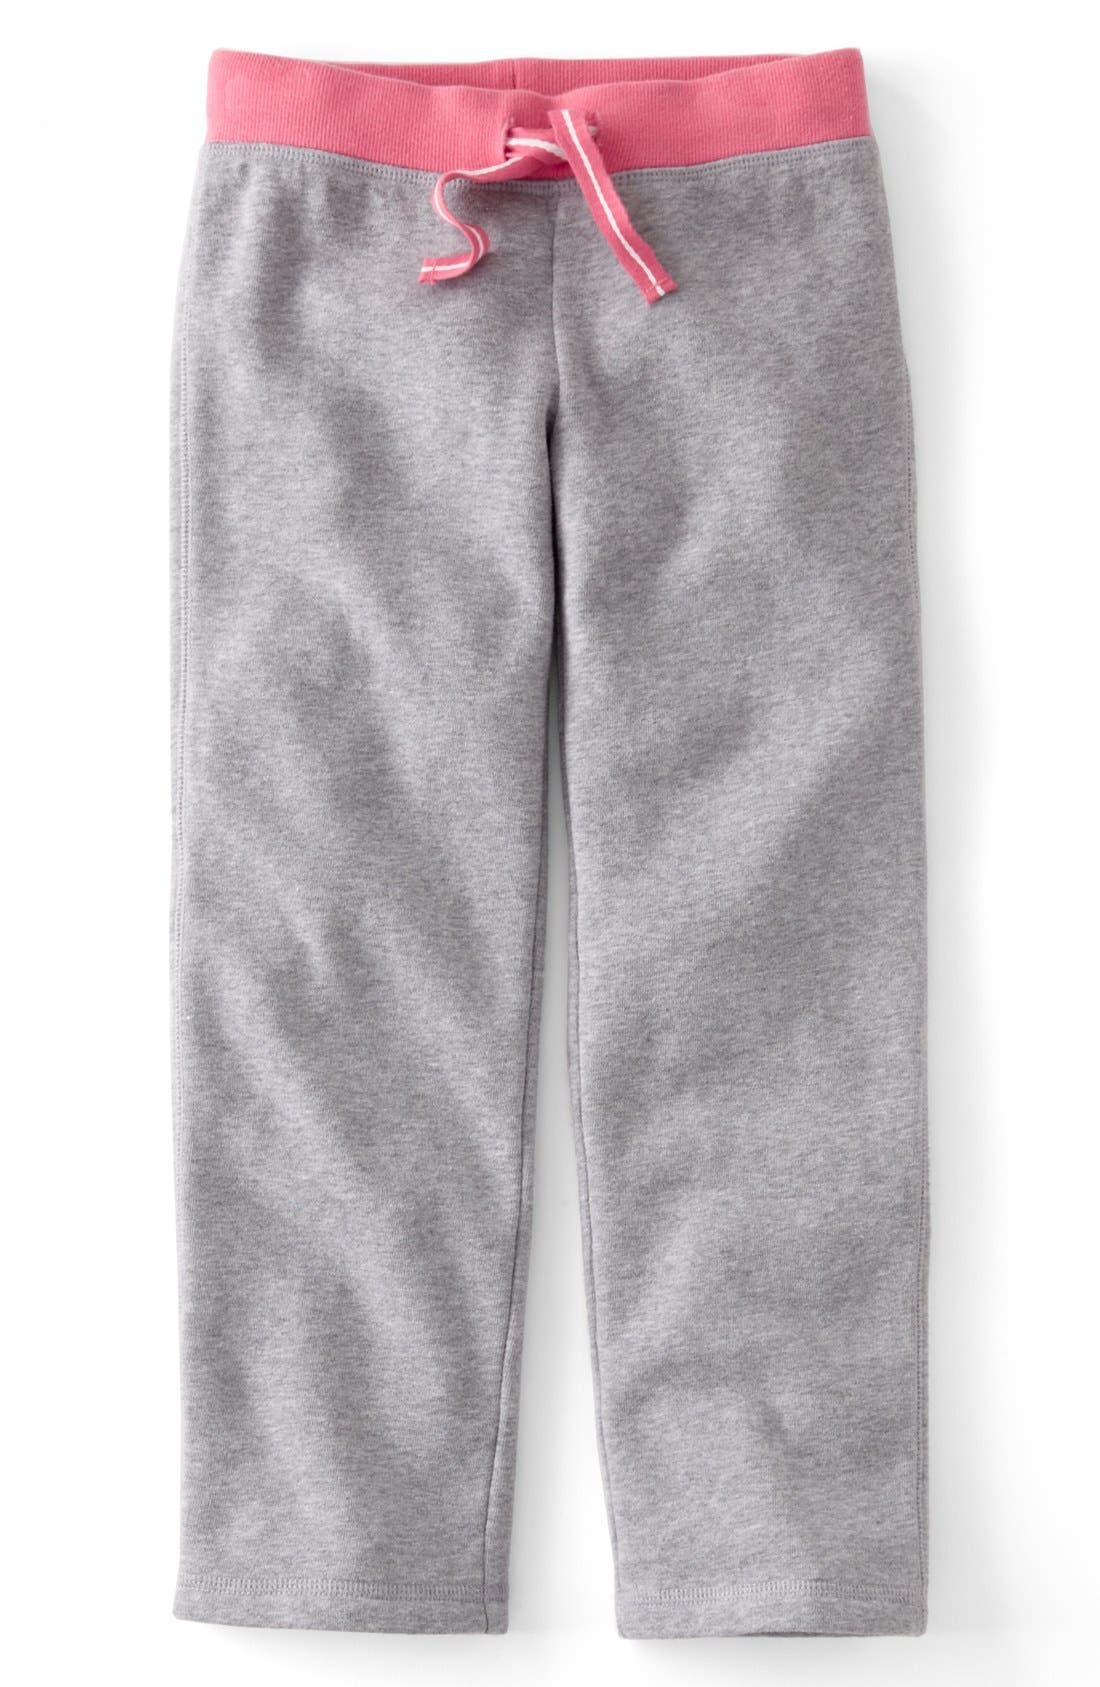 Main Image - Mini Boden 'Essential' Sweatpants (Toddler Girls, Little Girls & Big Girls)